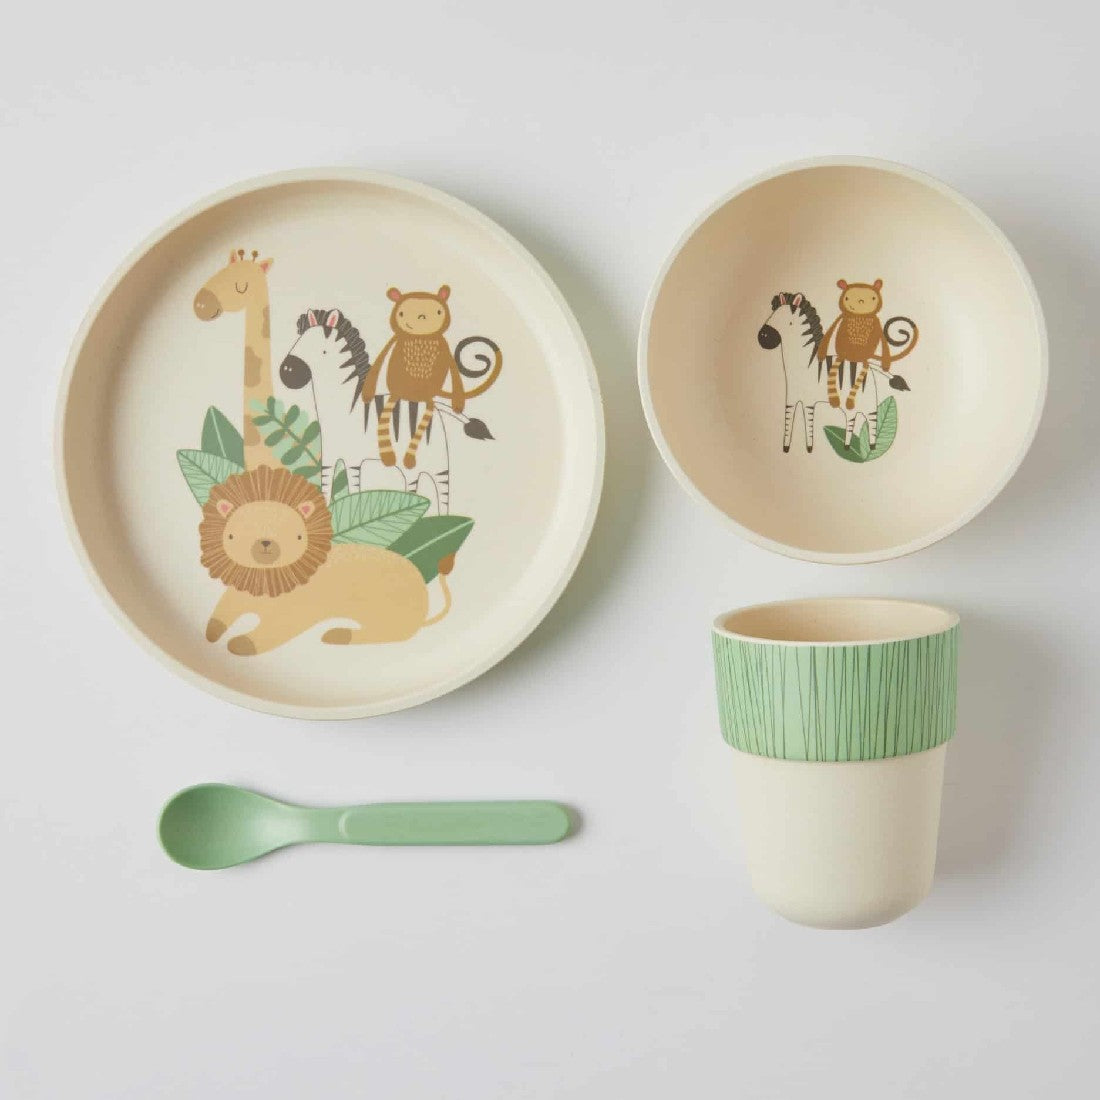 Jiggle & Giggle I Kids Dining Set